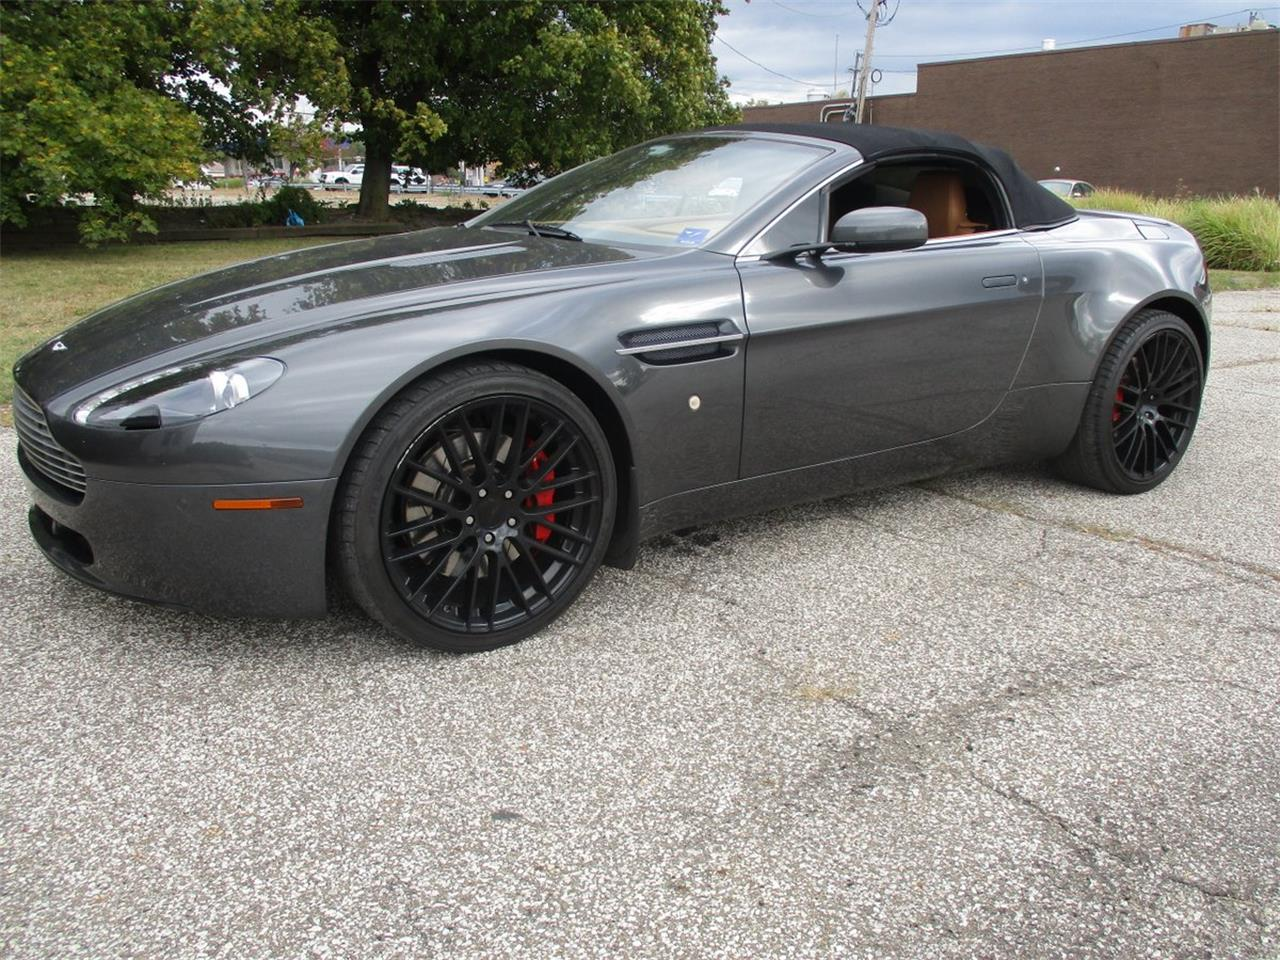 Large Picture of '09 Aston Martin V8 Vantage Roadster Offered by Vintage Motor Cars USA - M5PD